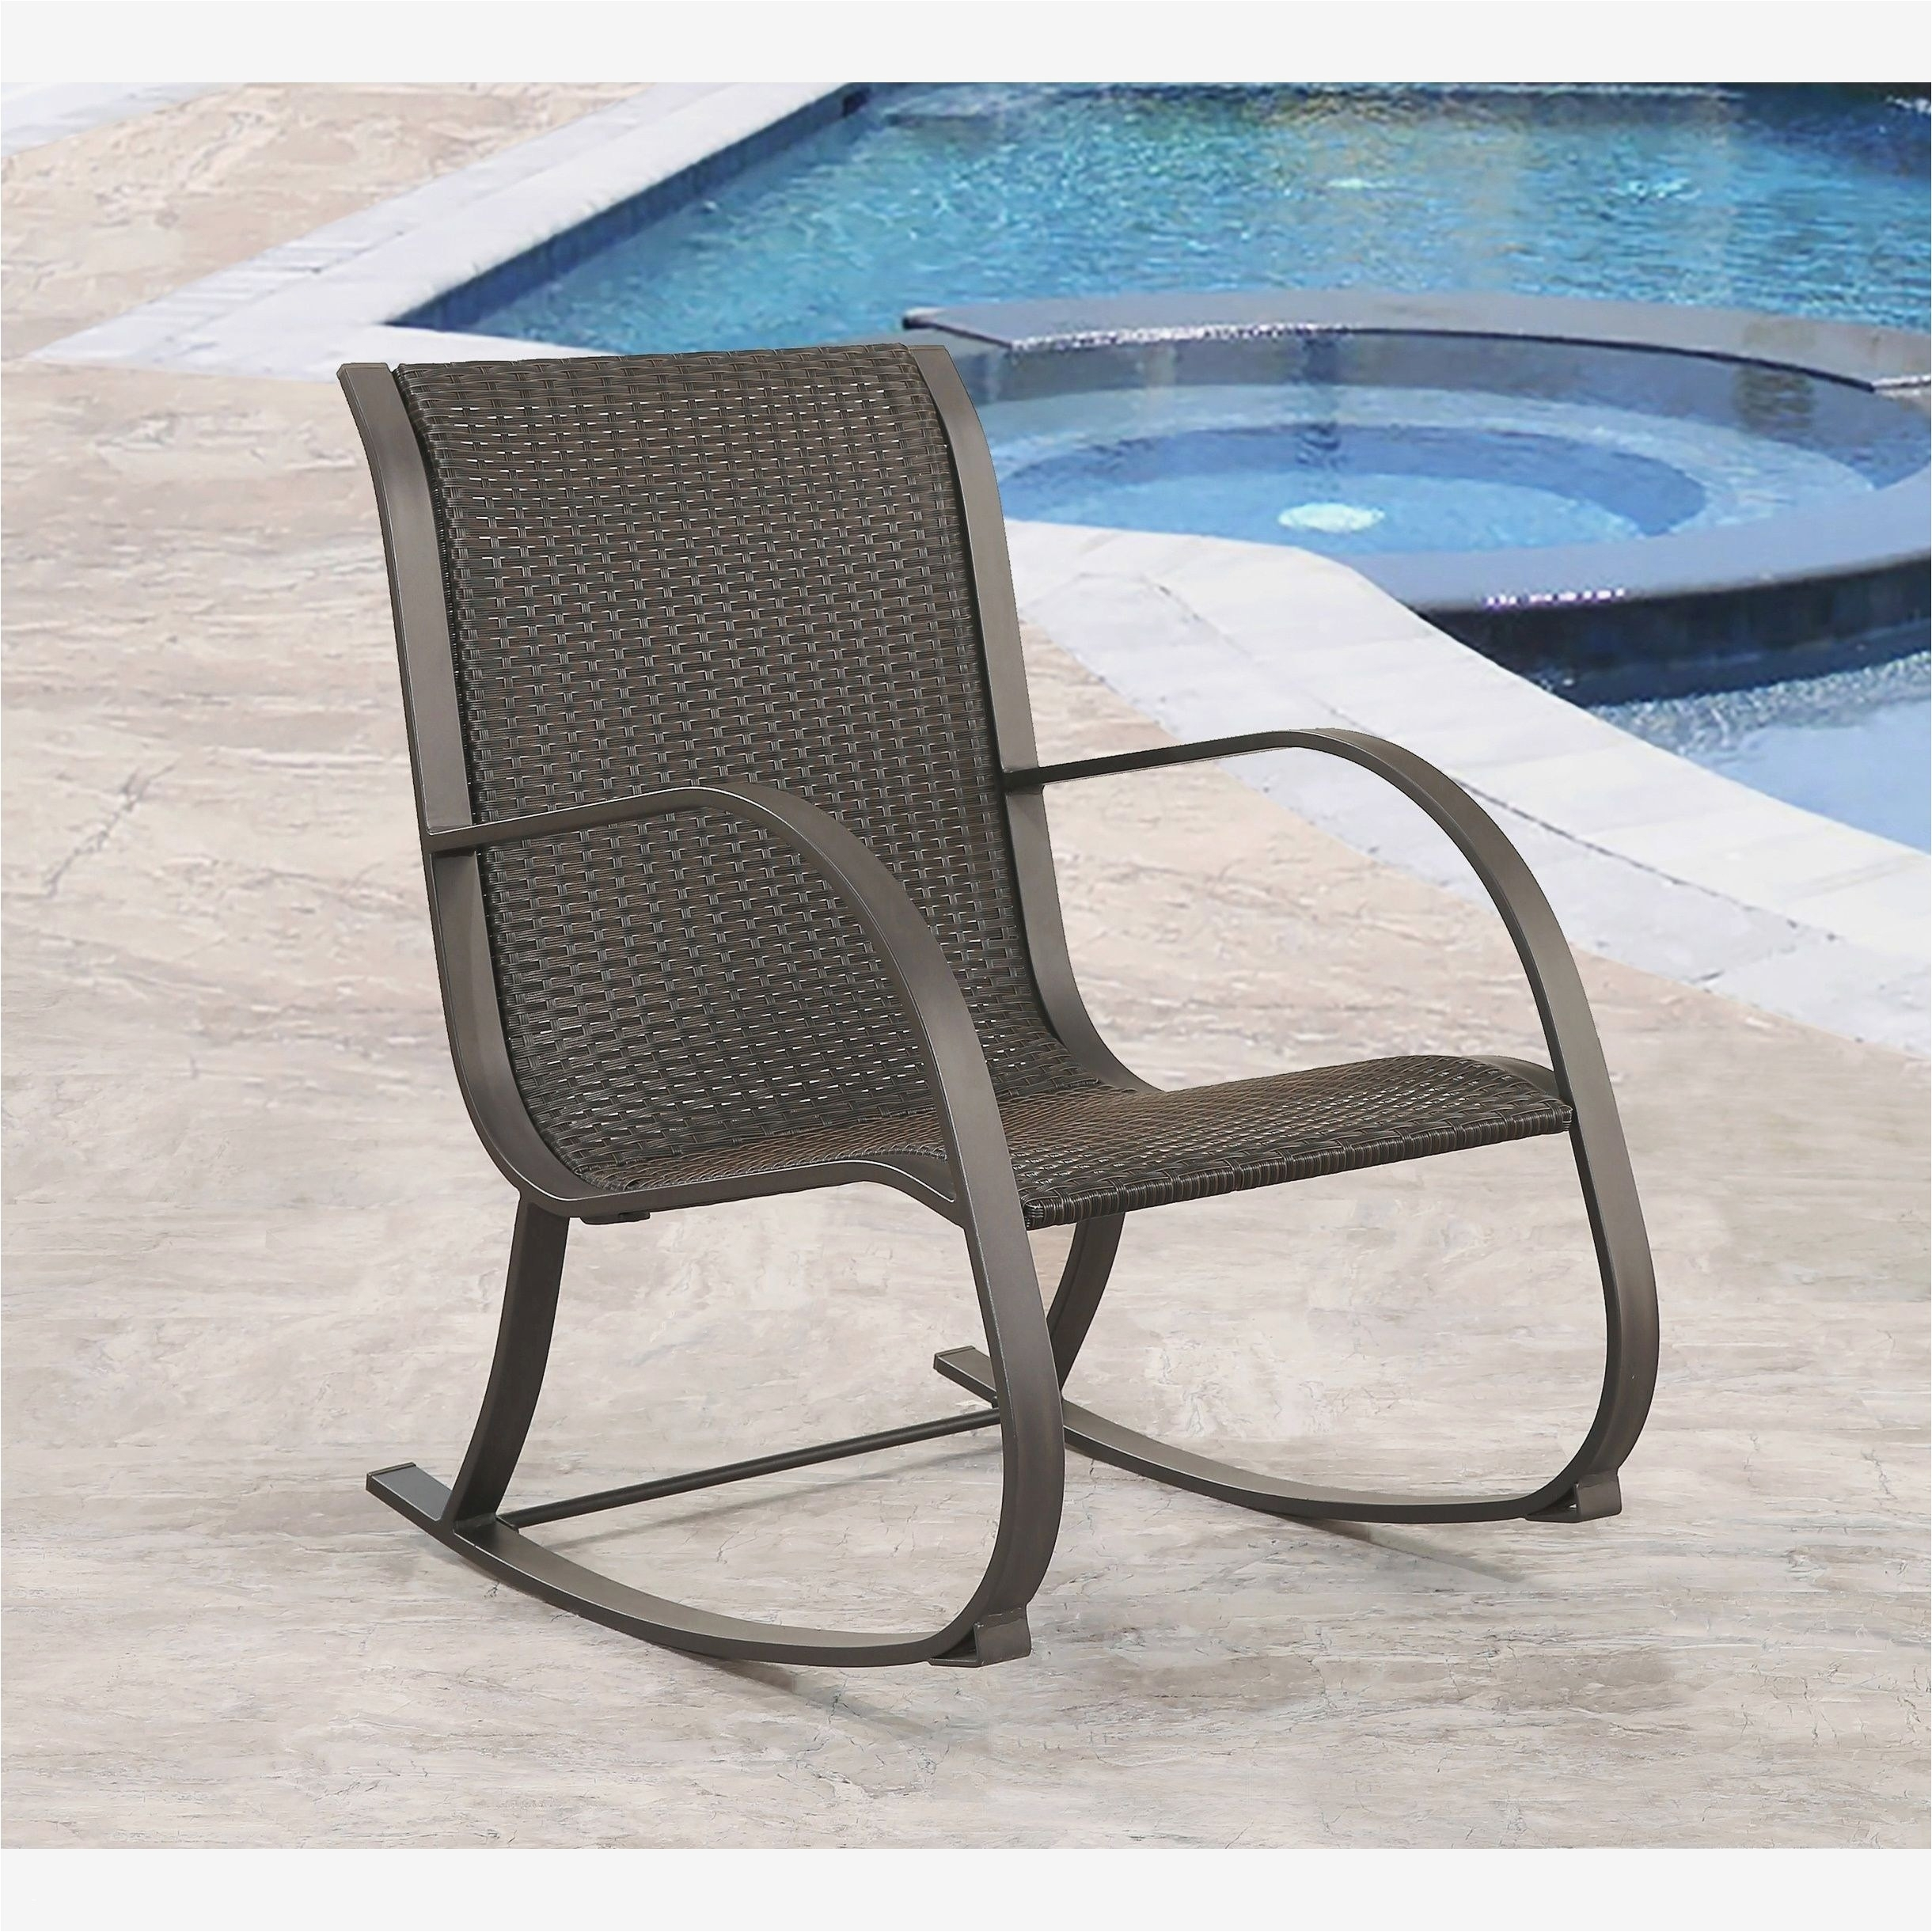 Awesome Rocking Chairs Patio Furniture Bellevuelittletheatre Ideas In Modern Patio Rocking Chairs (#1 of 15)